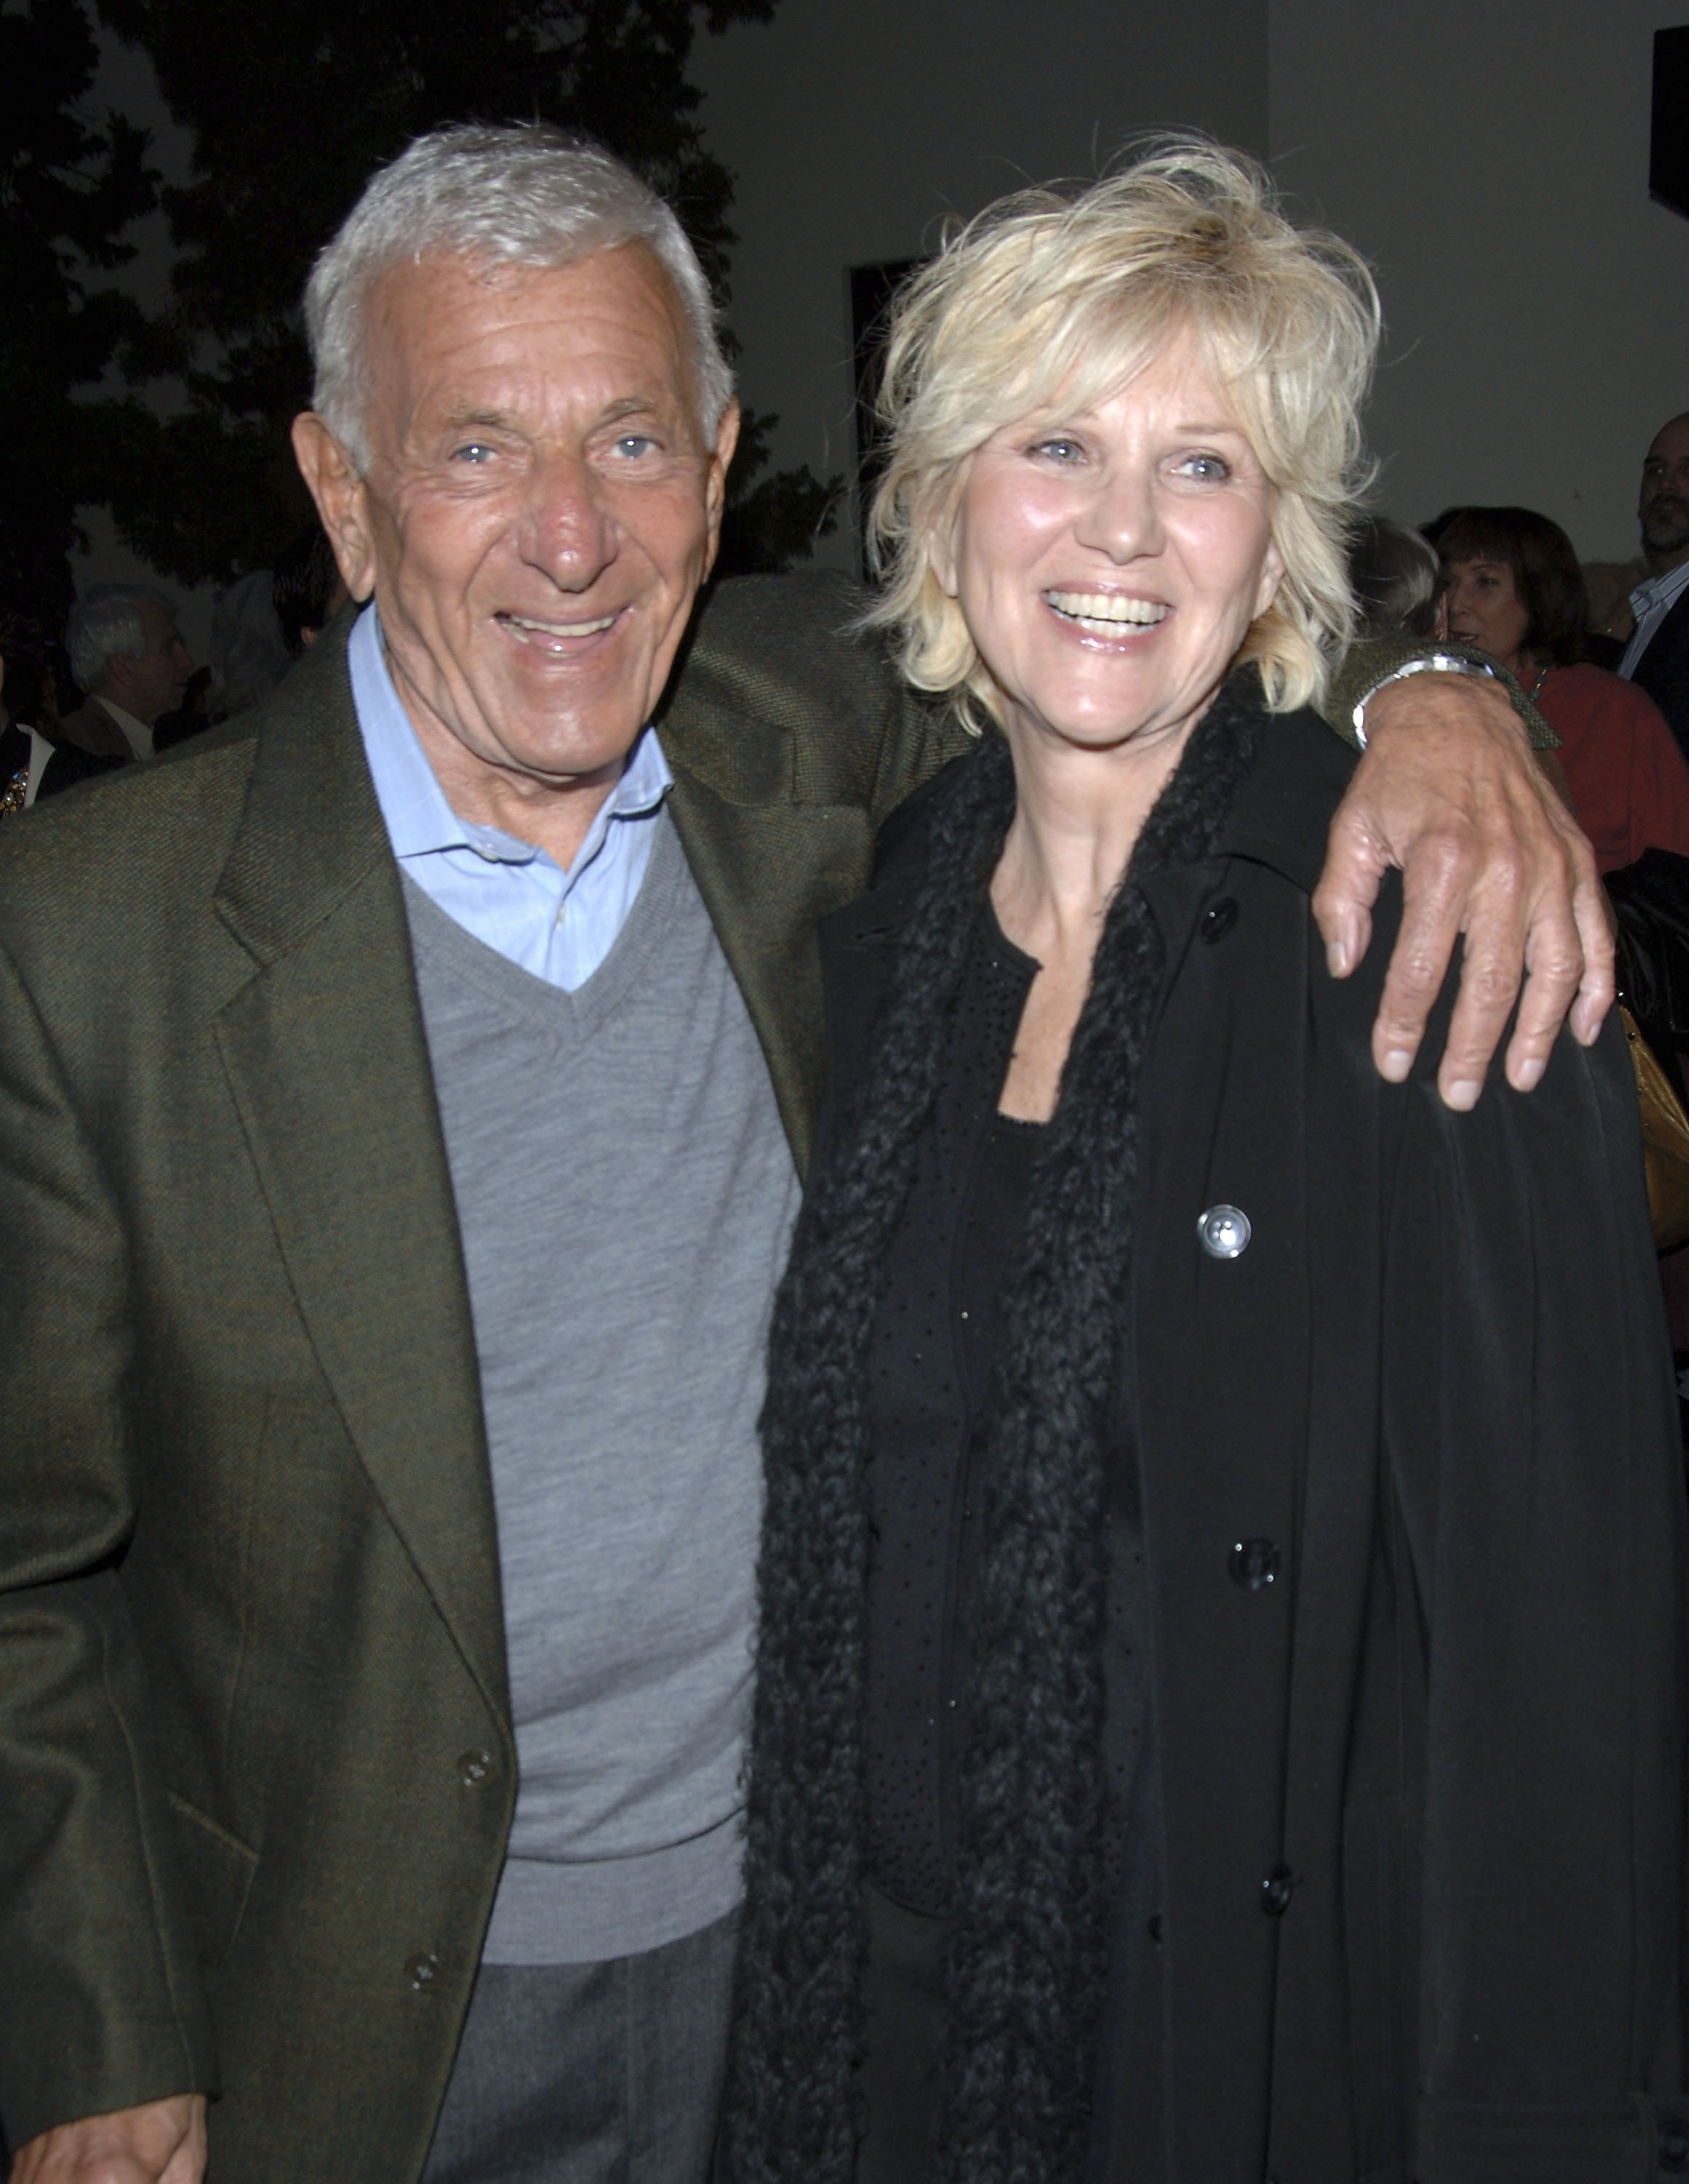 Jack Klugman and Peggy Crosby at the Wadsworth Theatre on April 27, 2006 in Los Angeles, California   Photo: Getty Images